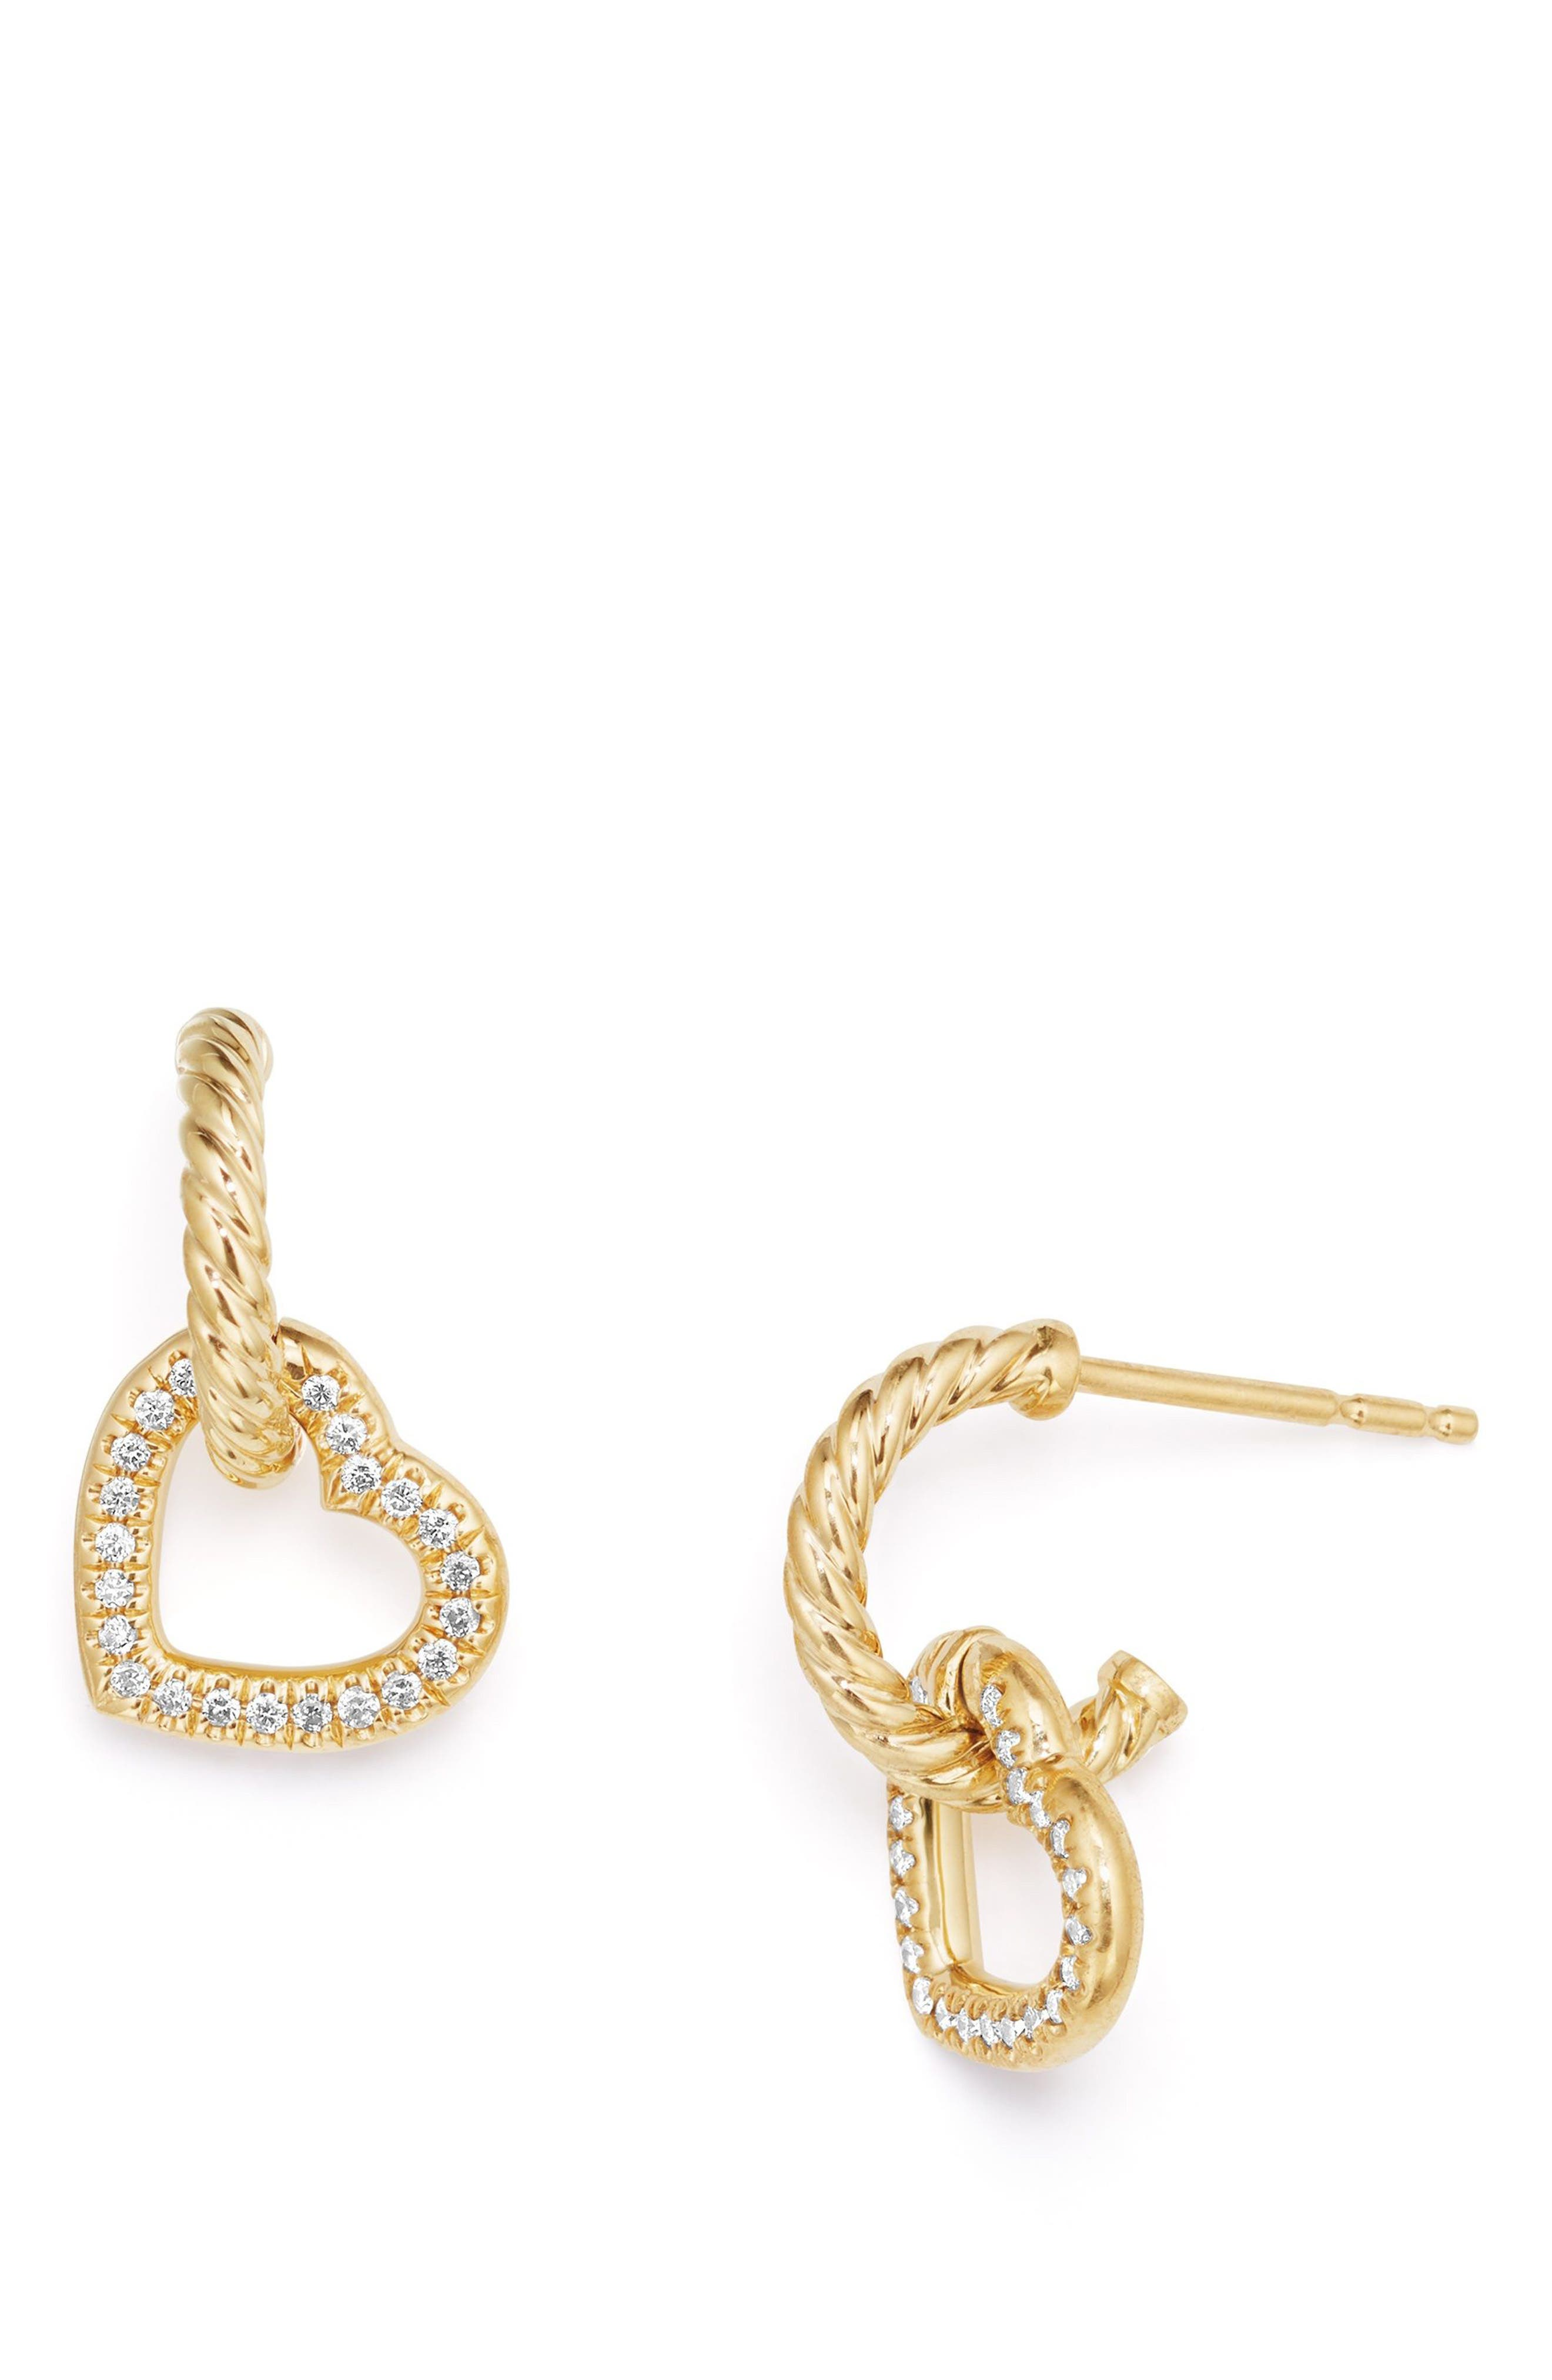 Heart Drop Earrings with Diamonds in 18K Gold,                             Main thumbnail 1, color,                             GOLD